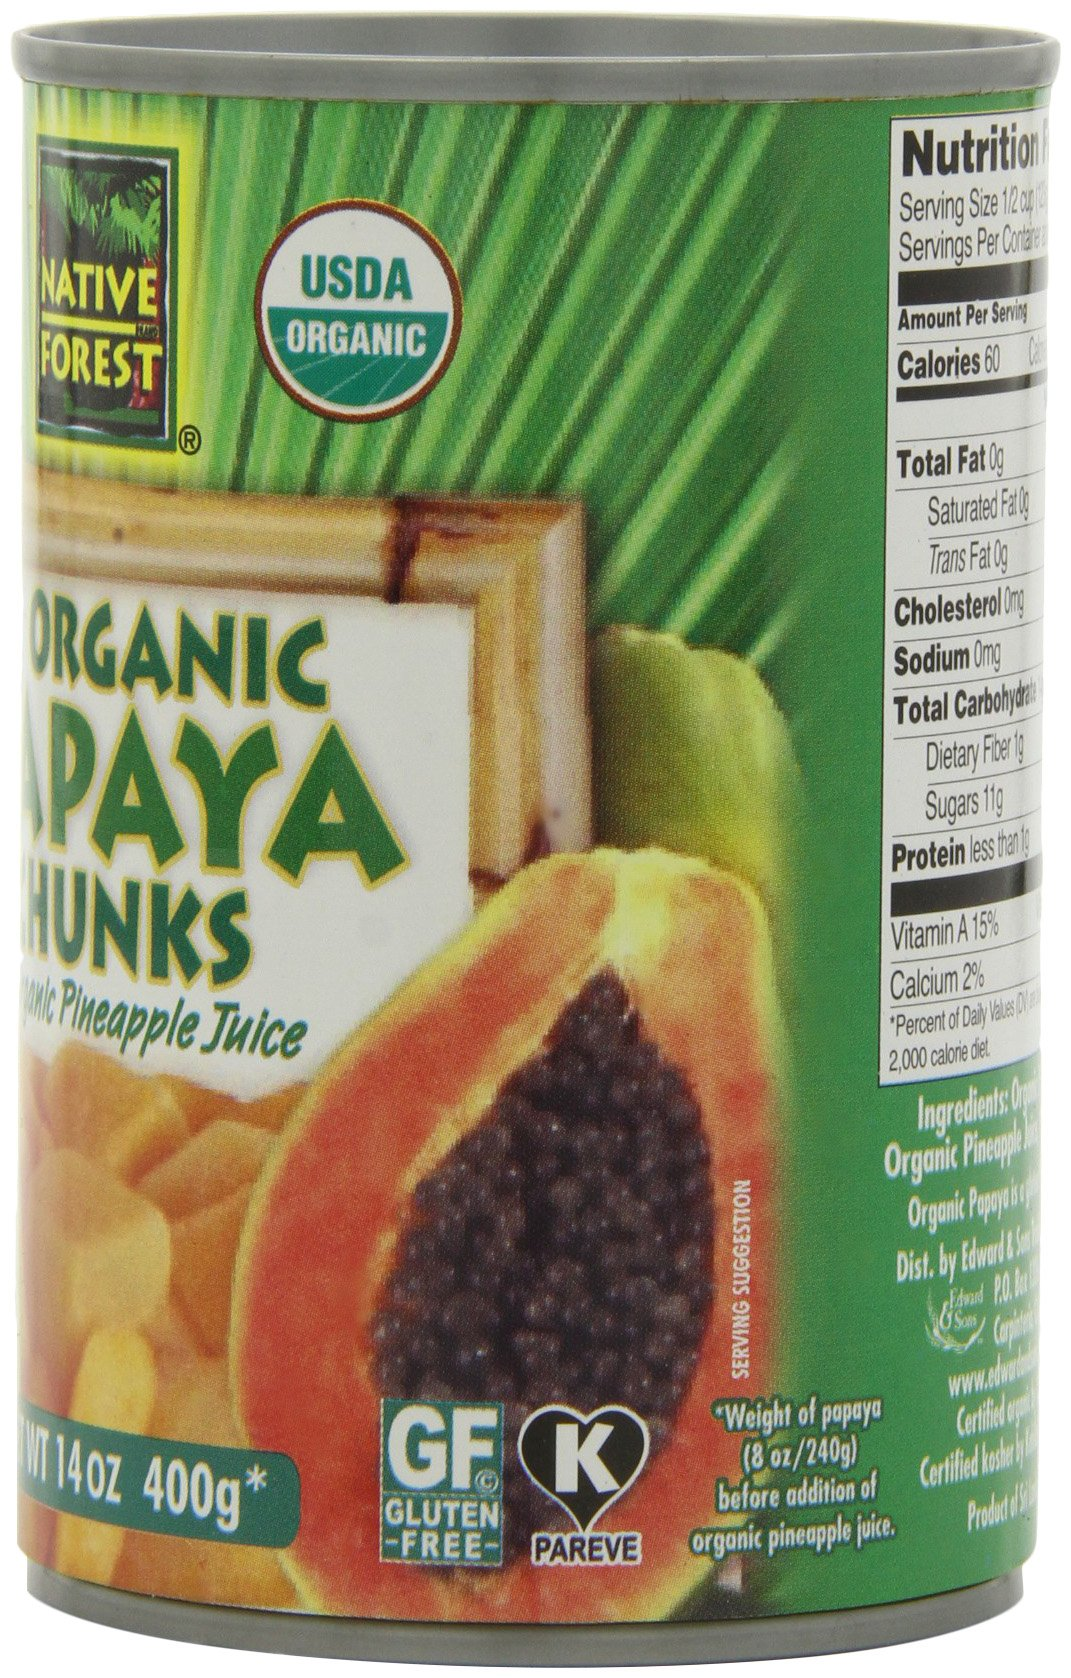 Native Forest Organic Papaya Chunks, 14-Ounce Cans (Pack of 6) by Native Forest (Image #5)